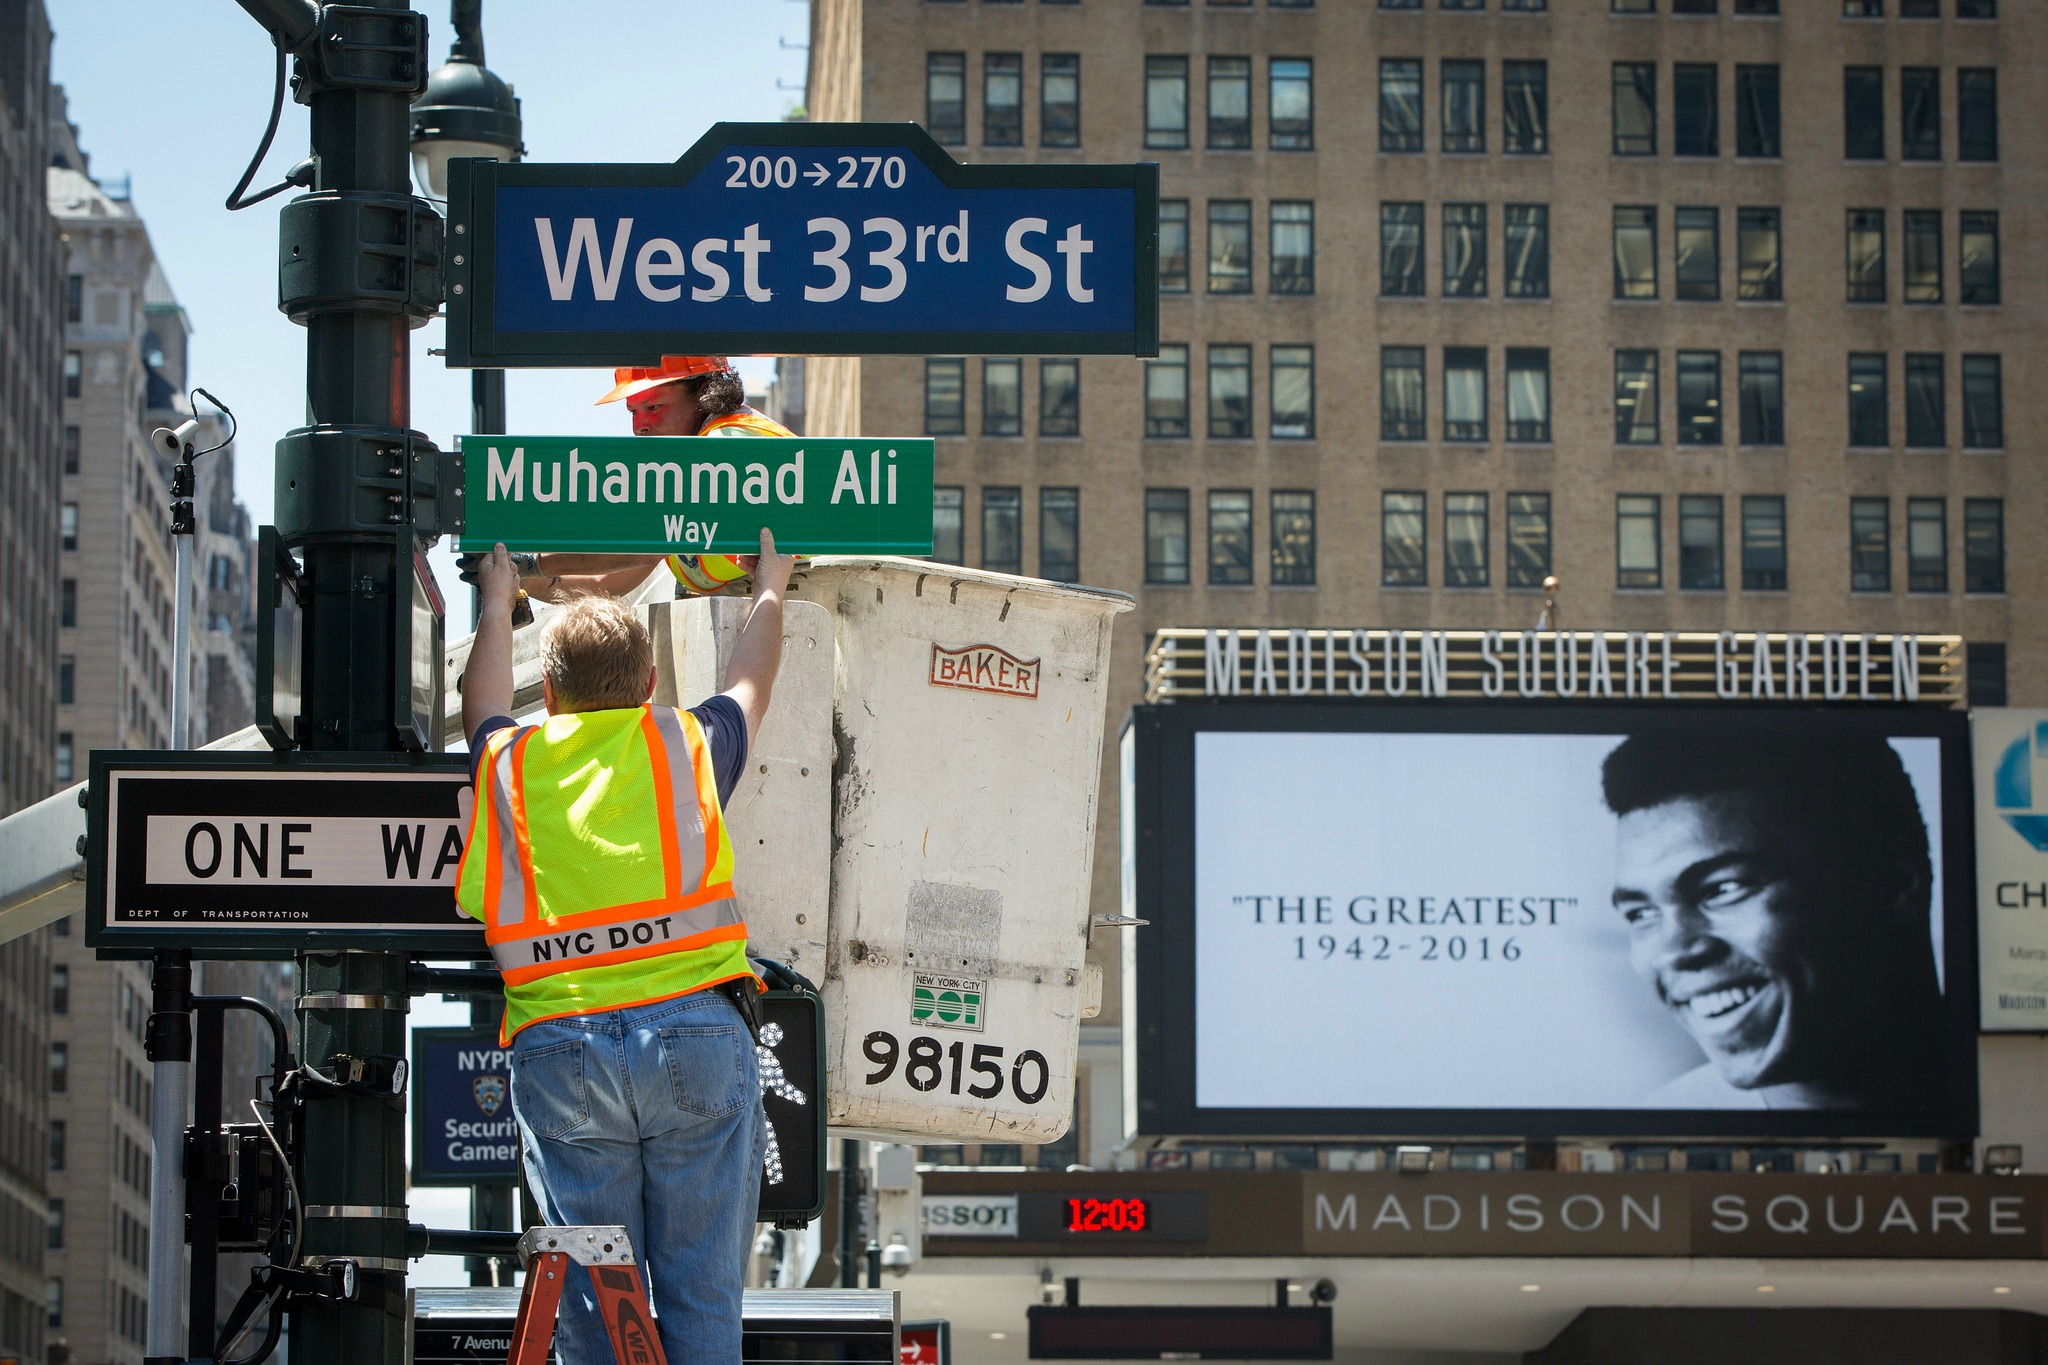 Muhammad Ali Way Street Sign Appears Outside Madison Square